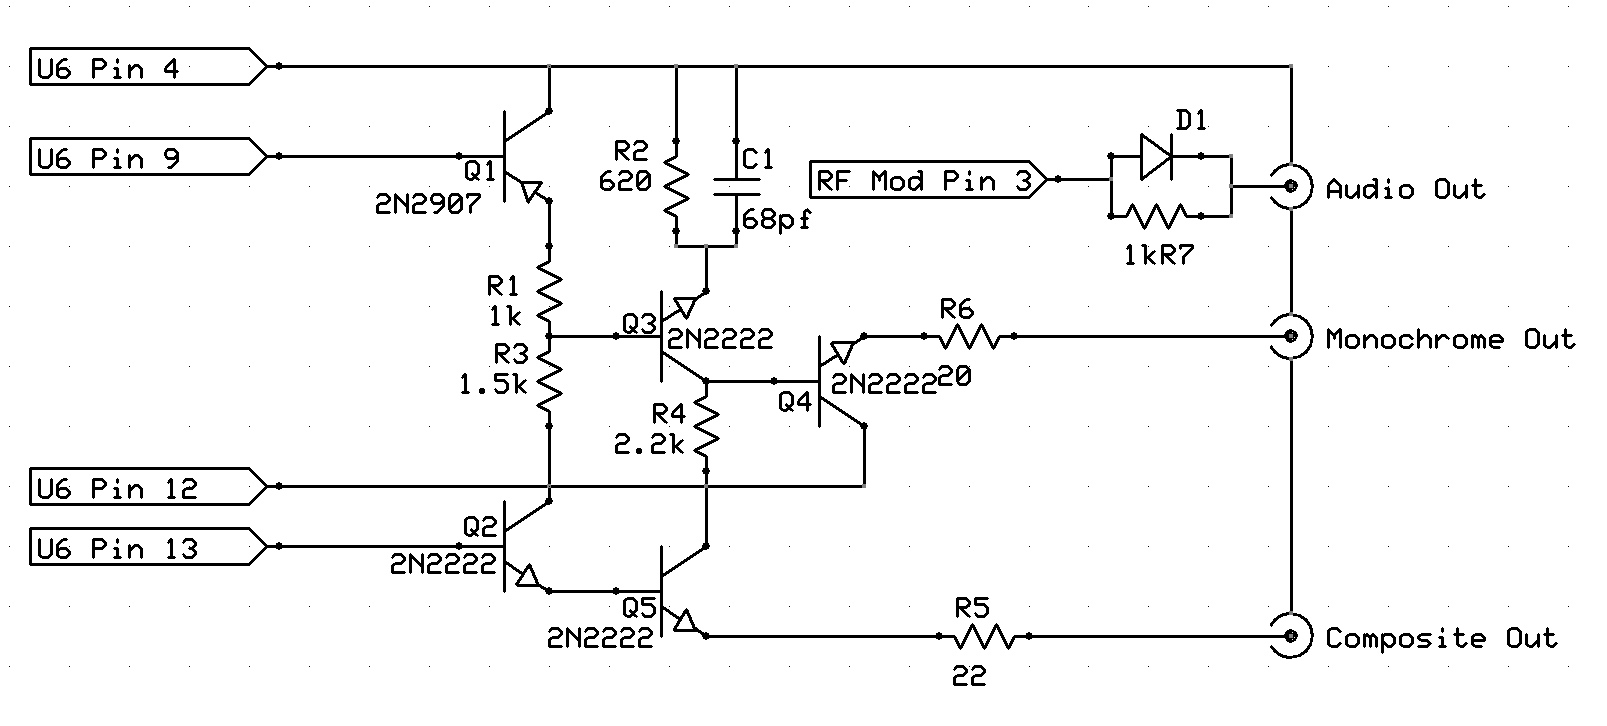 Other Bob Composite Video Schematic